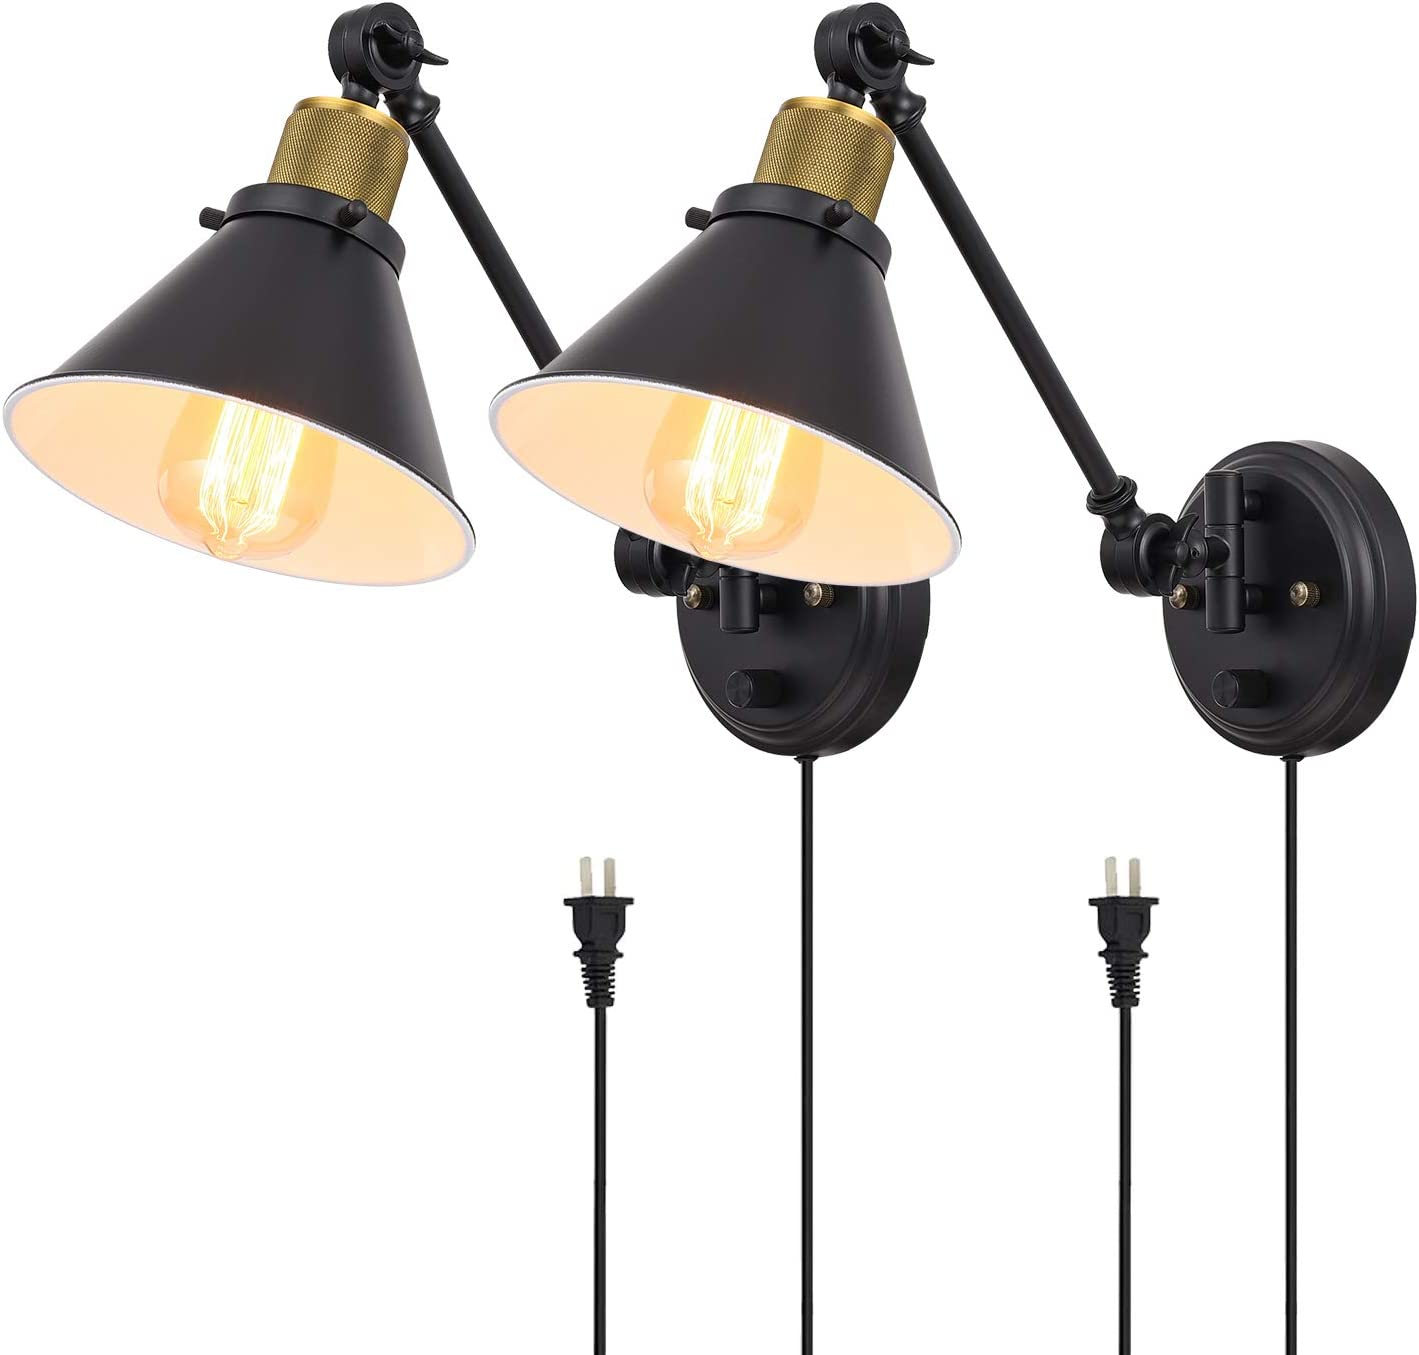 TRLIFE Plug in Wall Sconces Set of 2, Dimmable Swing Arm Wall Lights Plug in Wall Sconce with On/Off Switch, Wall Mounted Wall Sconce Lighting with 6FT Plug in Cord, E26 Base, UL Listed